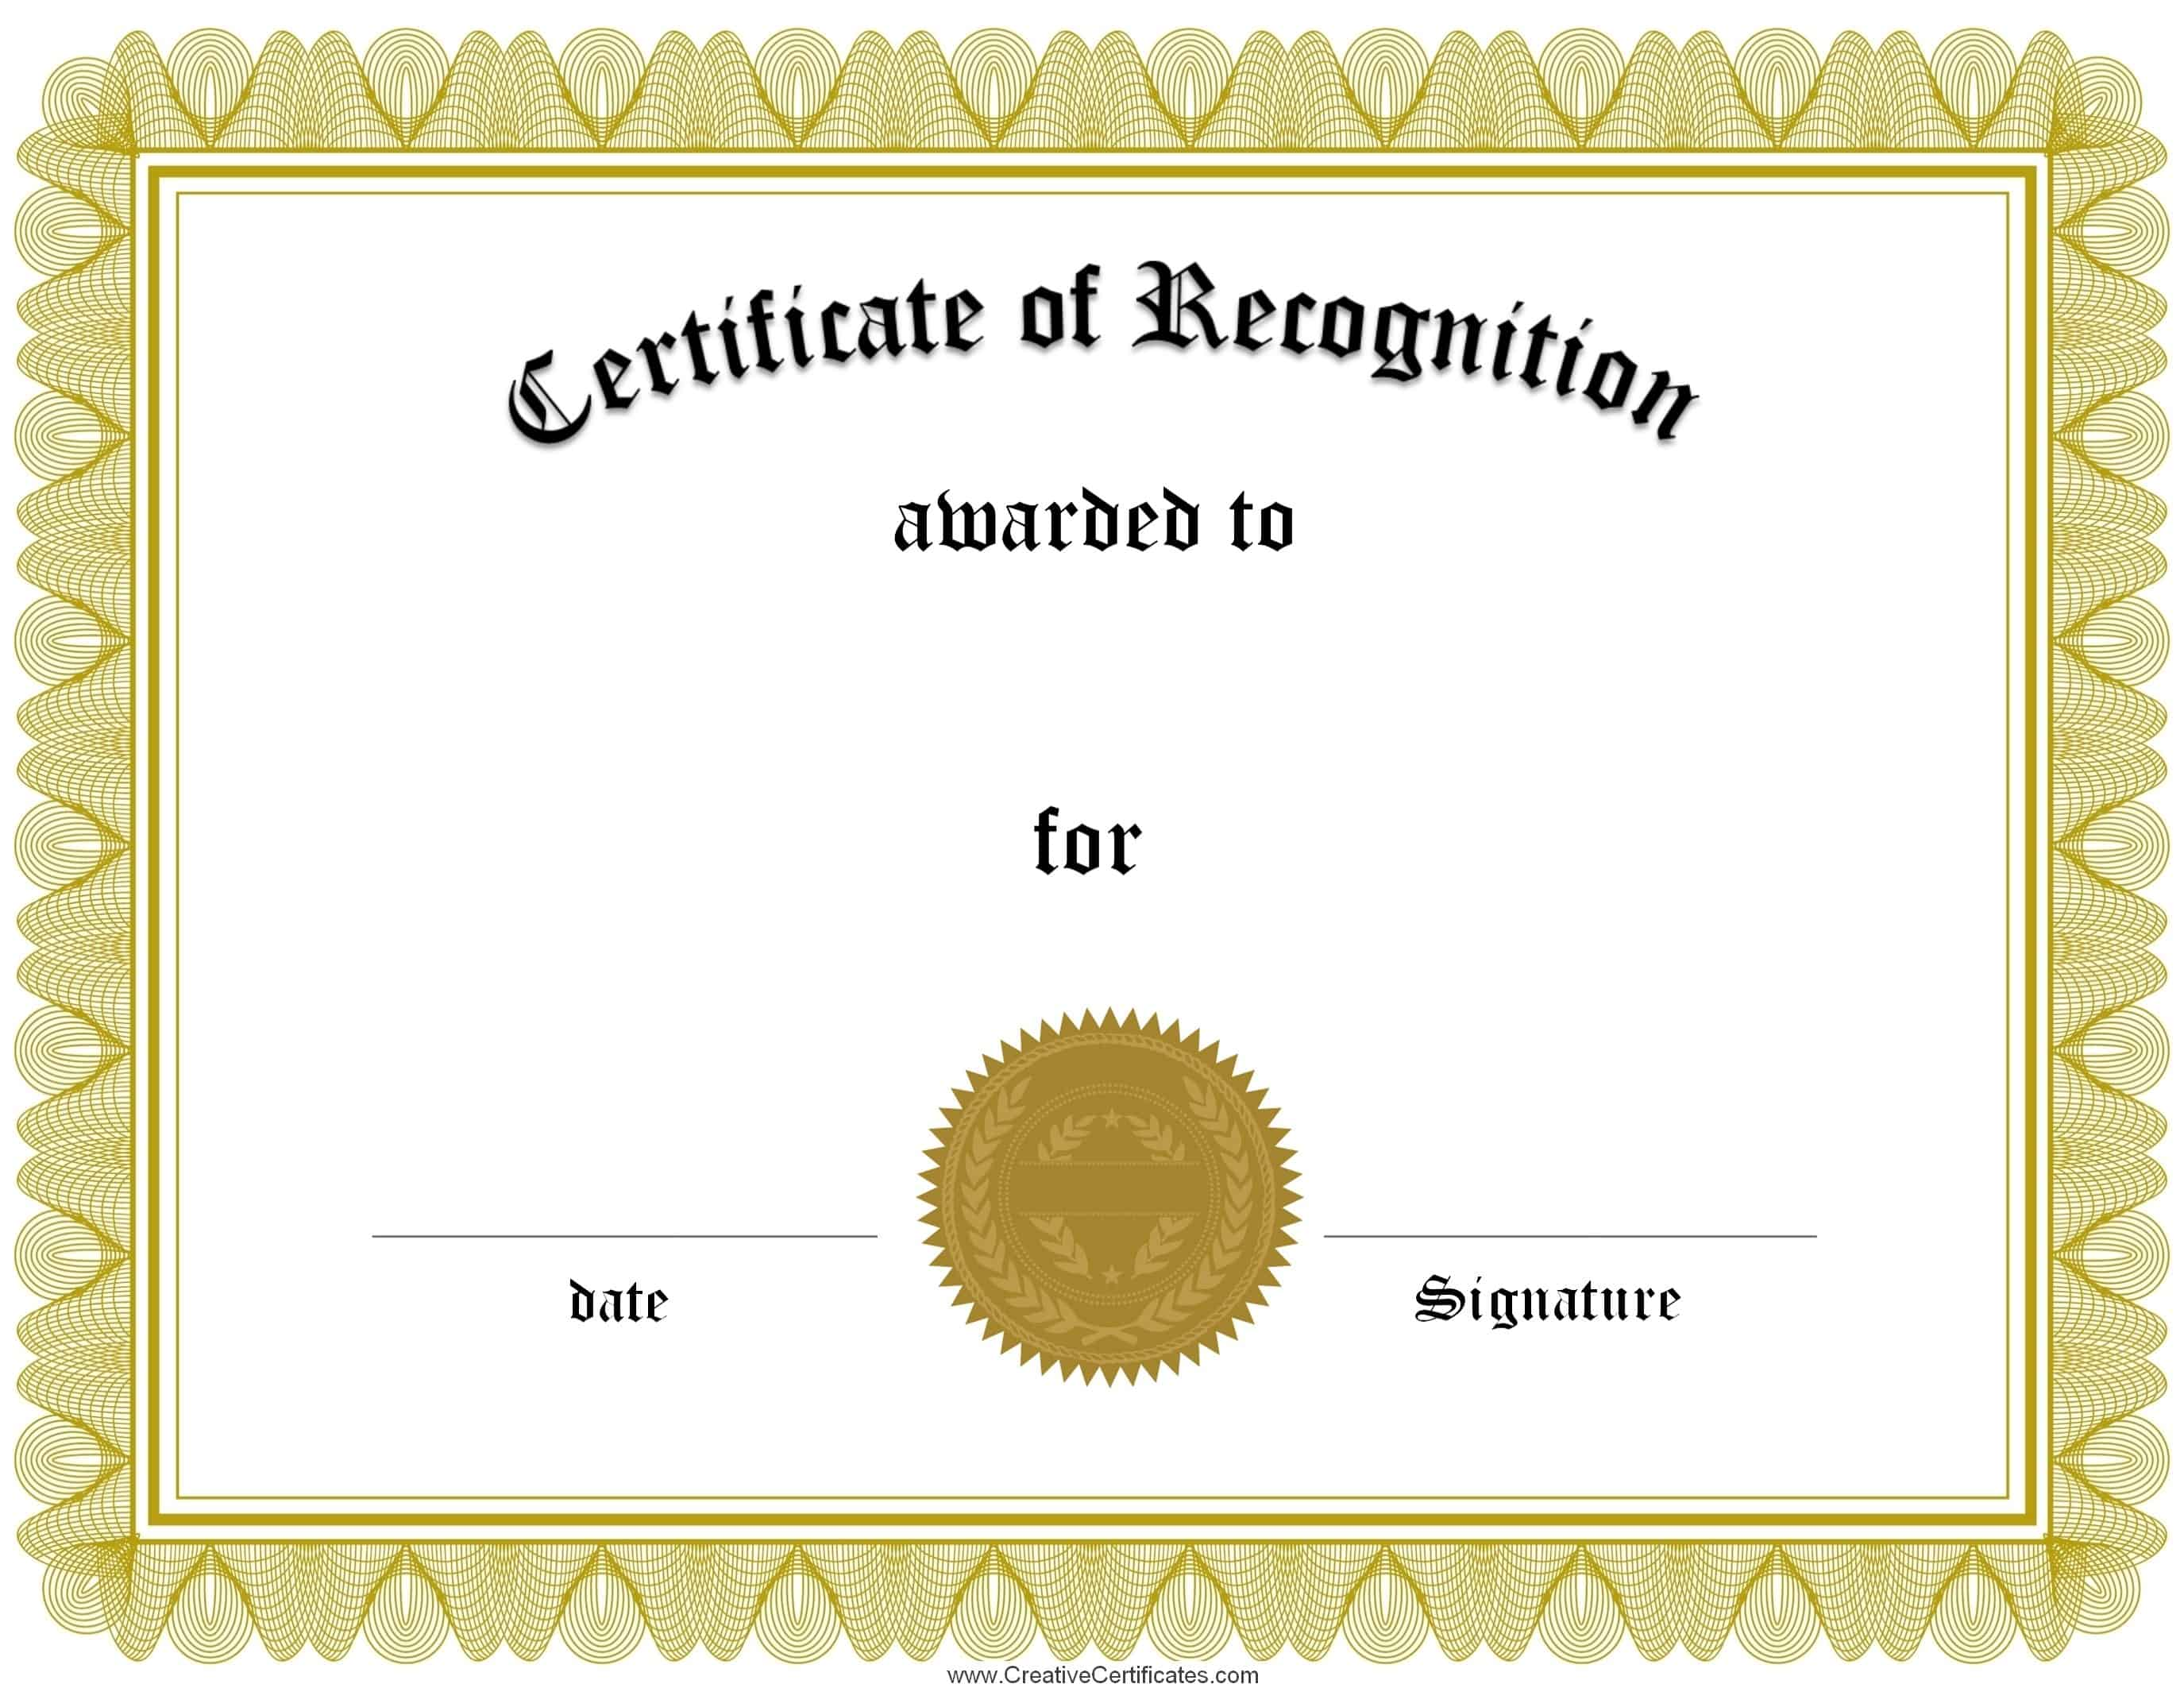 Free certificate of recognition template – Certificate Printable Templates